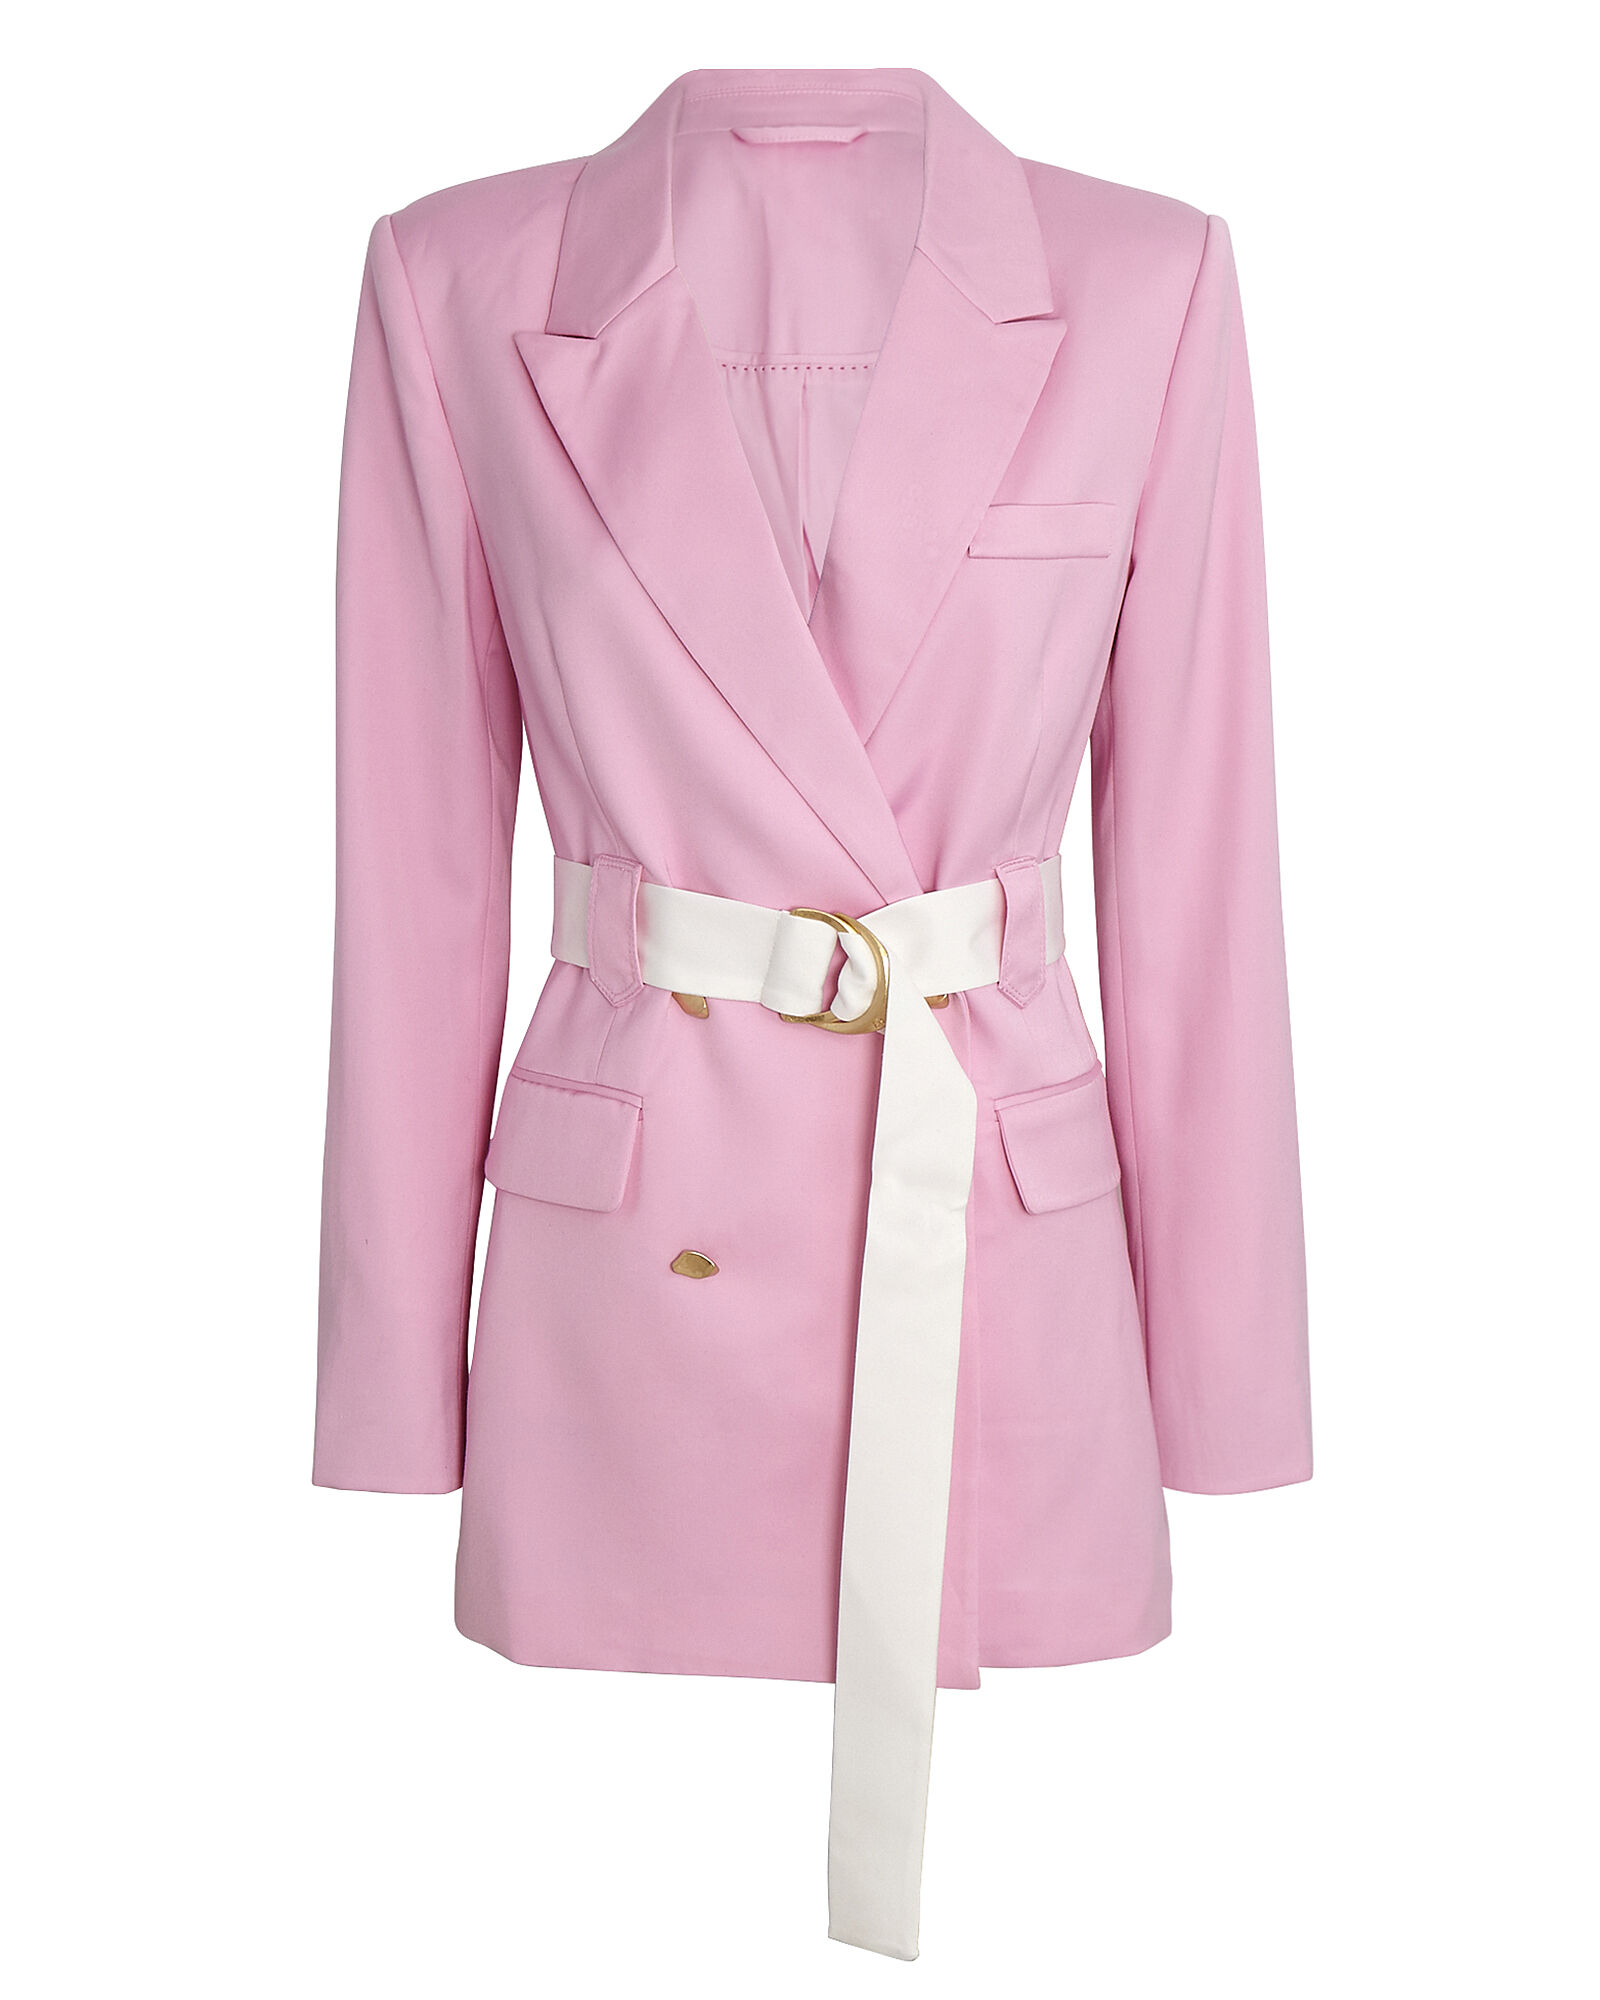 Psychedelia Belted Double-Breasted Blazer, PINK, hi-res